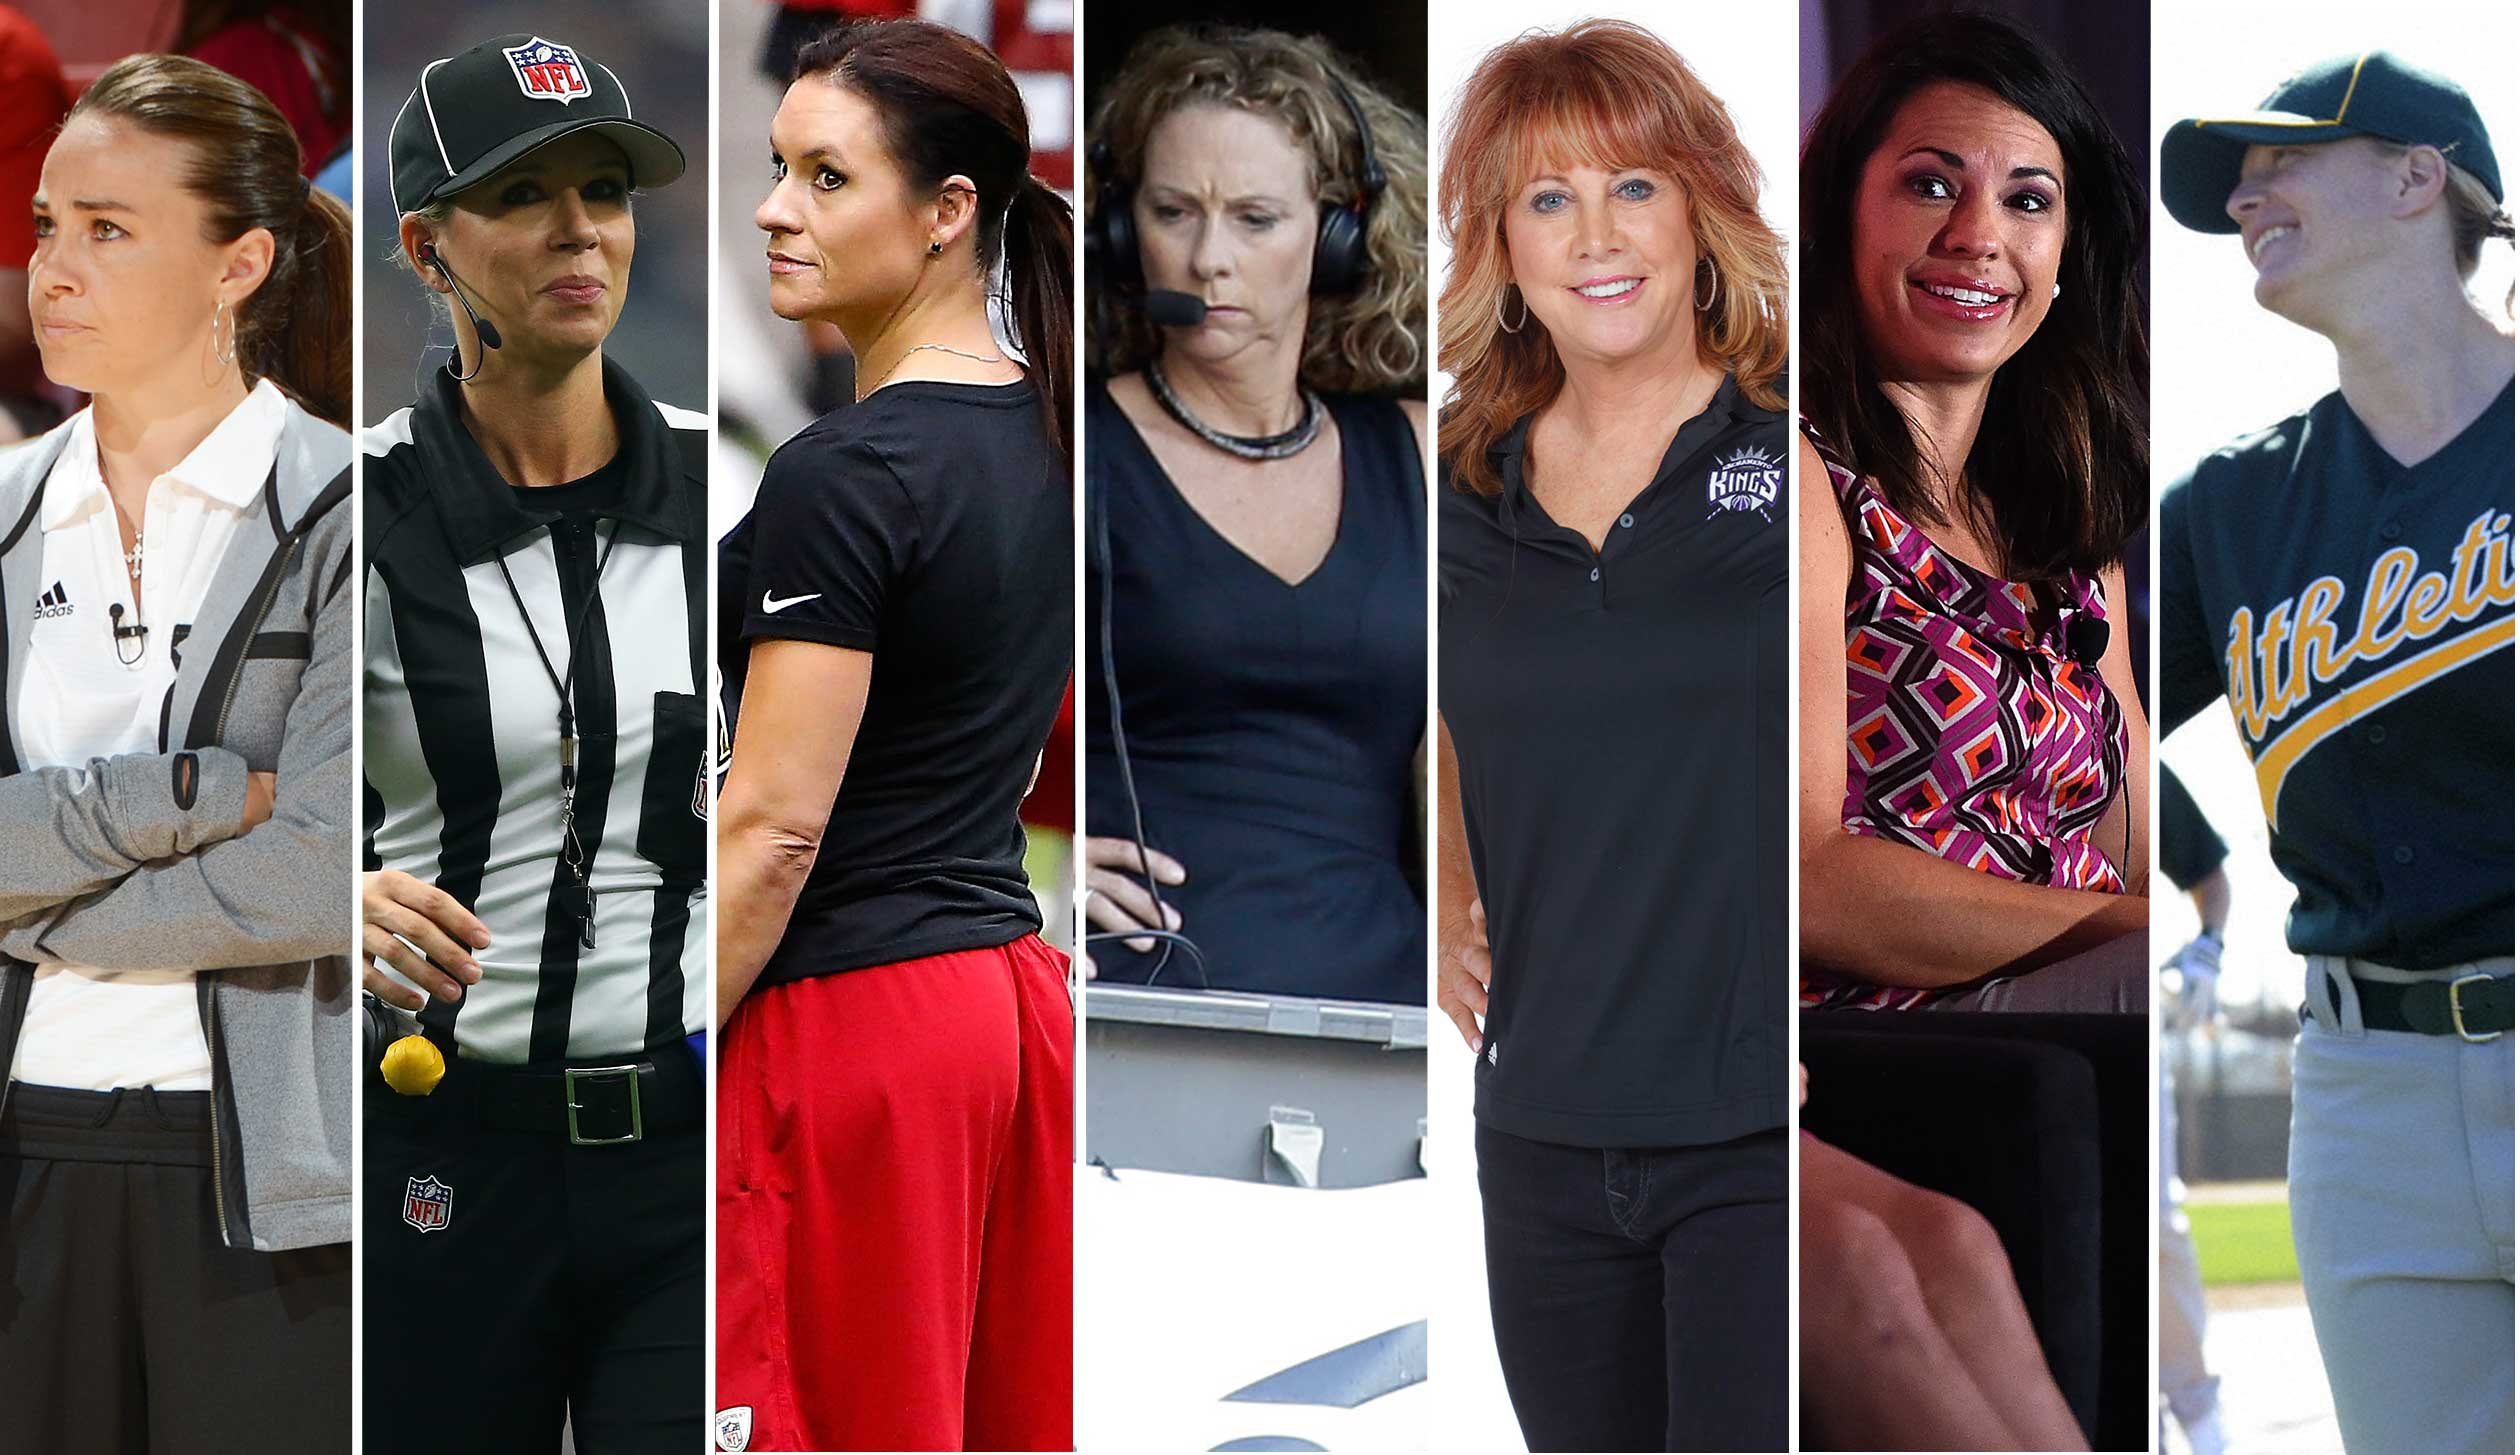 Becky Hammon, left, Sarah Thomas, Jen Welter, Beth Mowins, Nancy Lieberman, Jessica Mendoza and Justine Siegal.